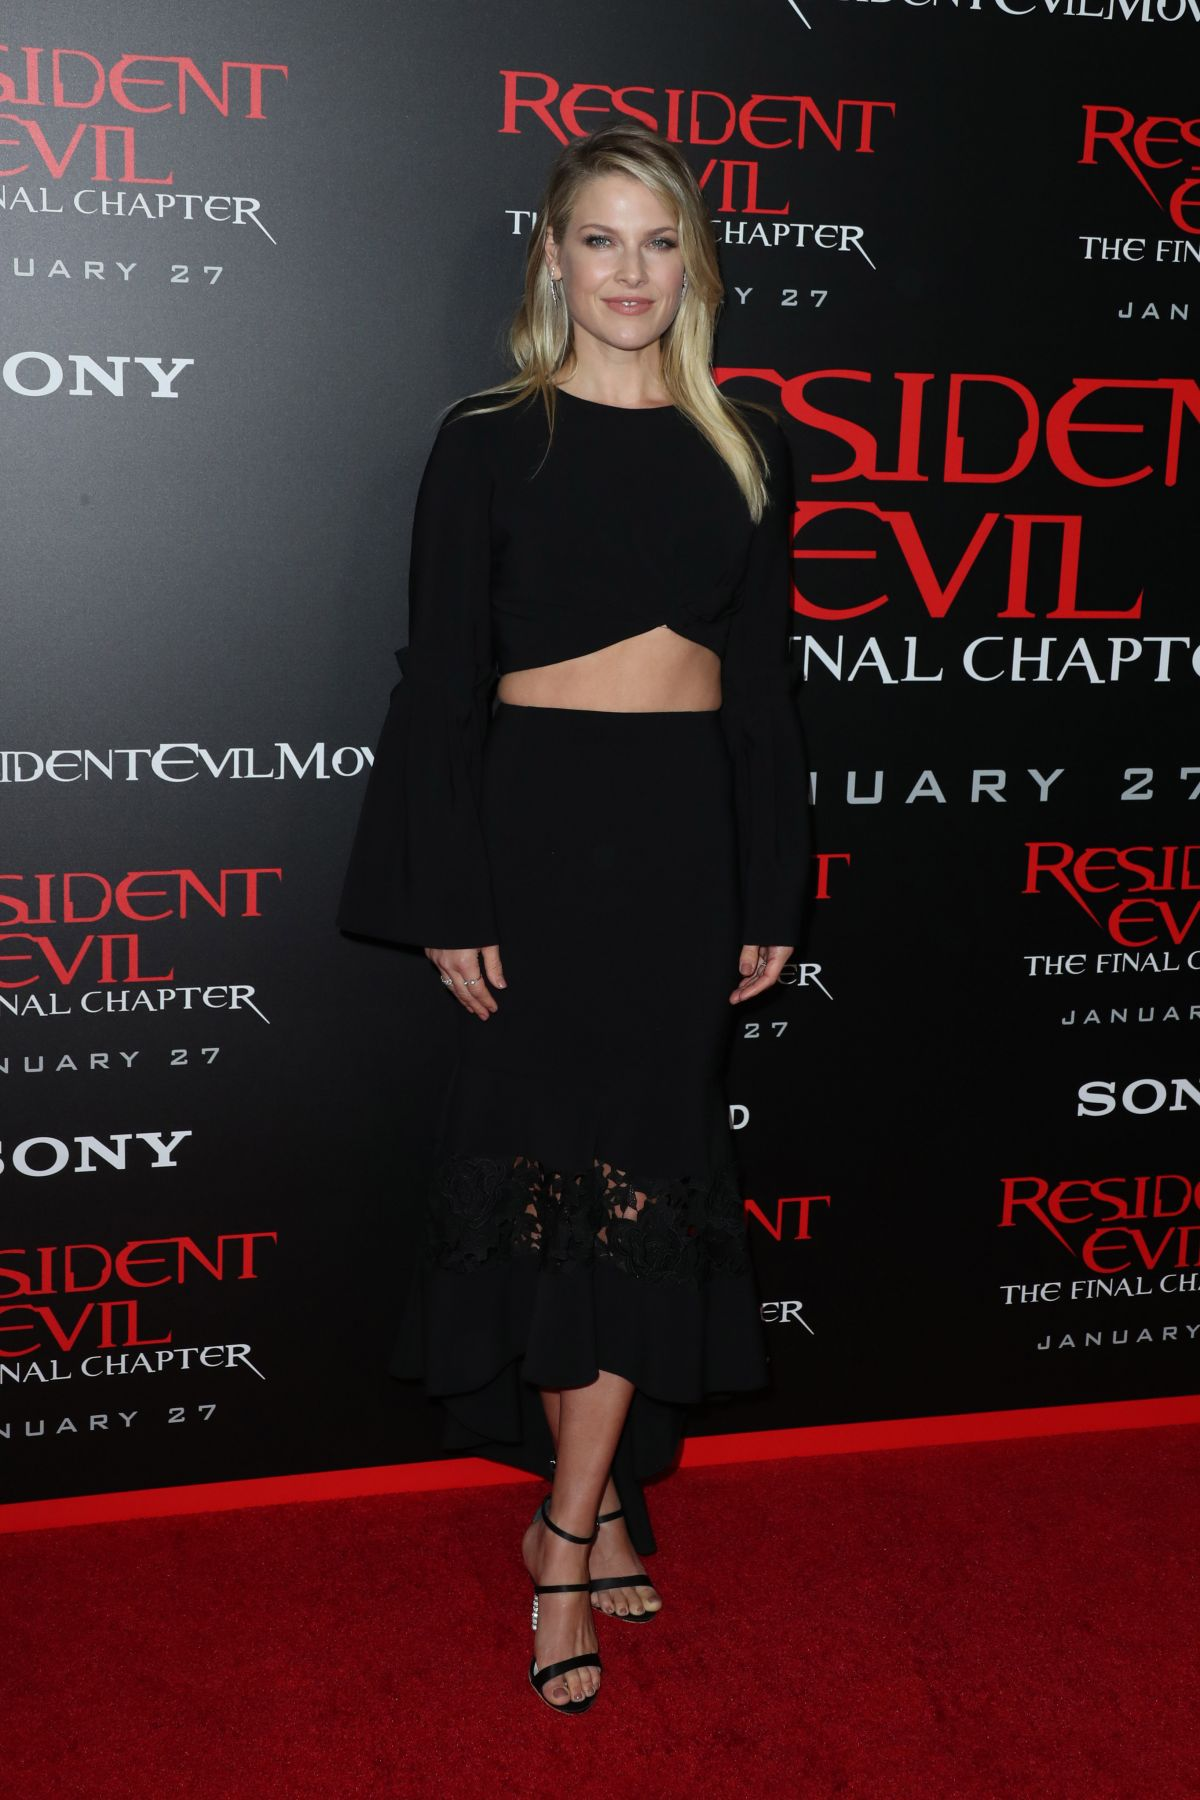 """Ali Larter At """"Resident Evil: The Final Chapter"""" Premiere in Los Angeles"""